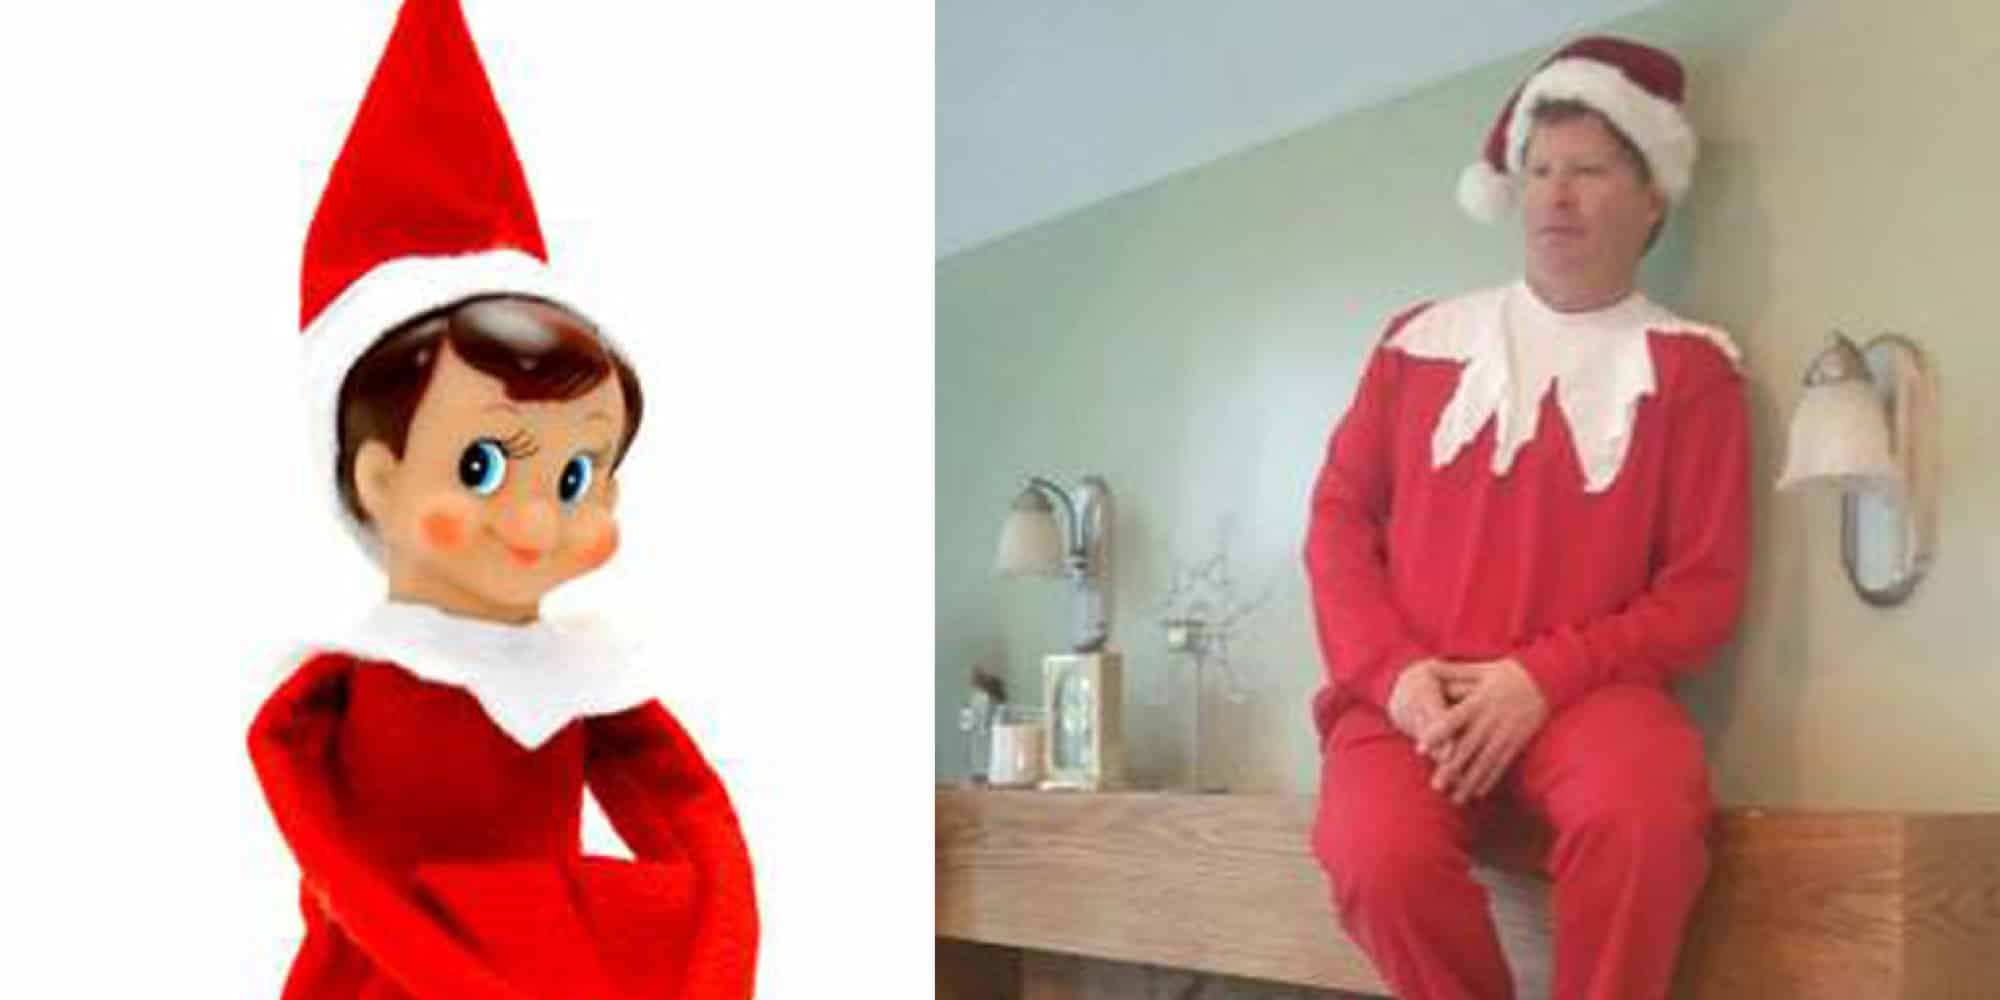 Boston Man Offers Real Life Elf On The Shelf Experience